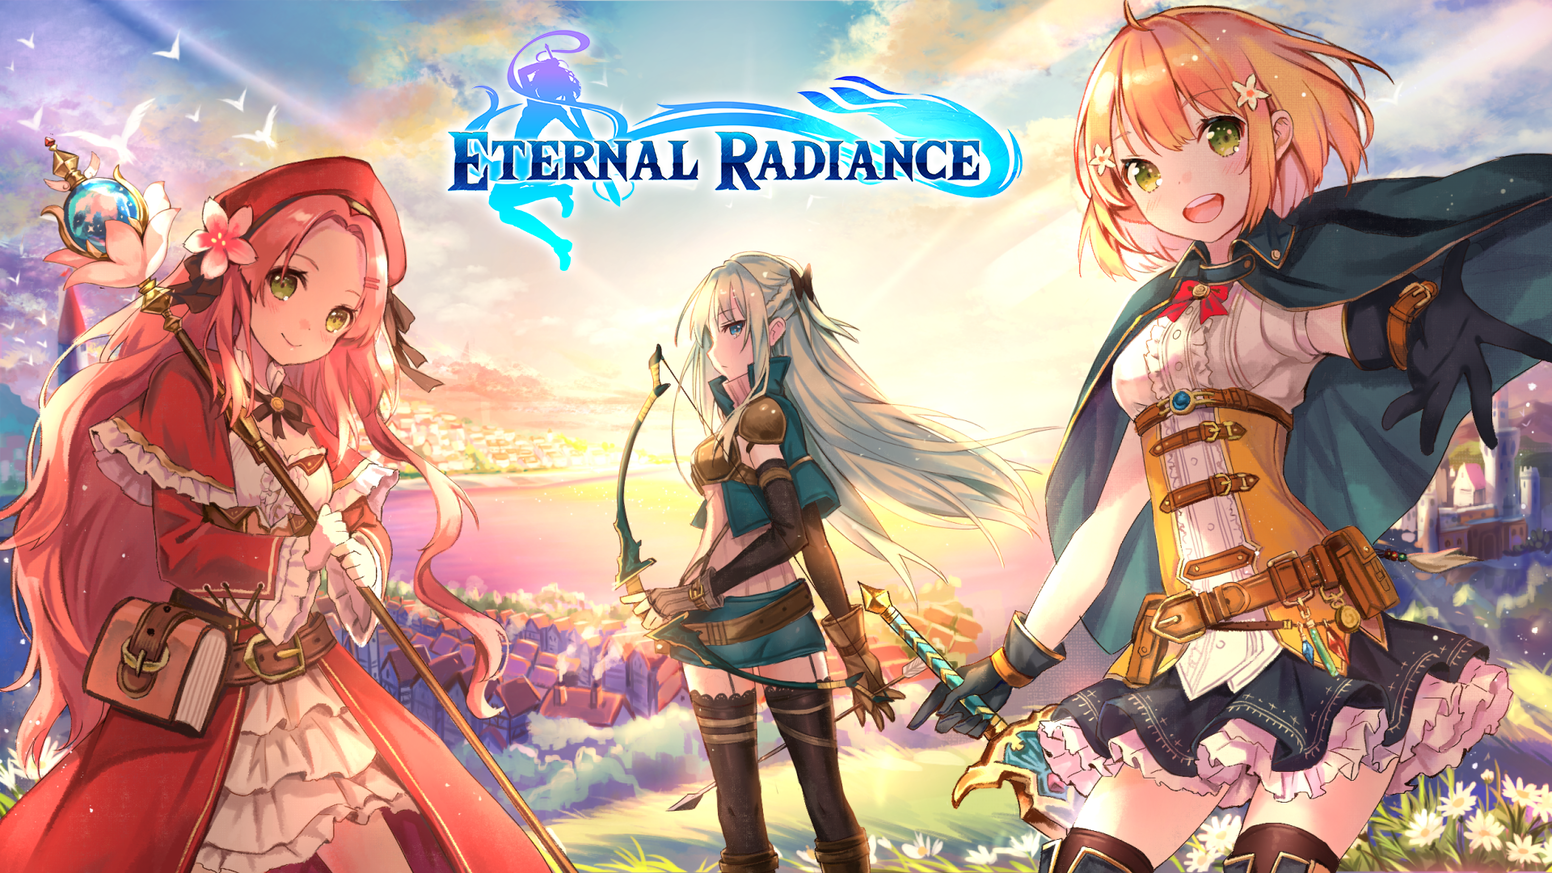 A character-driven action JRPG set in a world with a long-forgotten past.